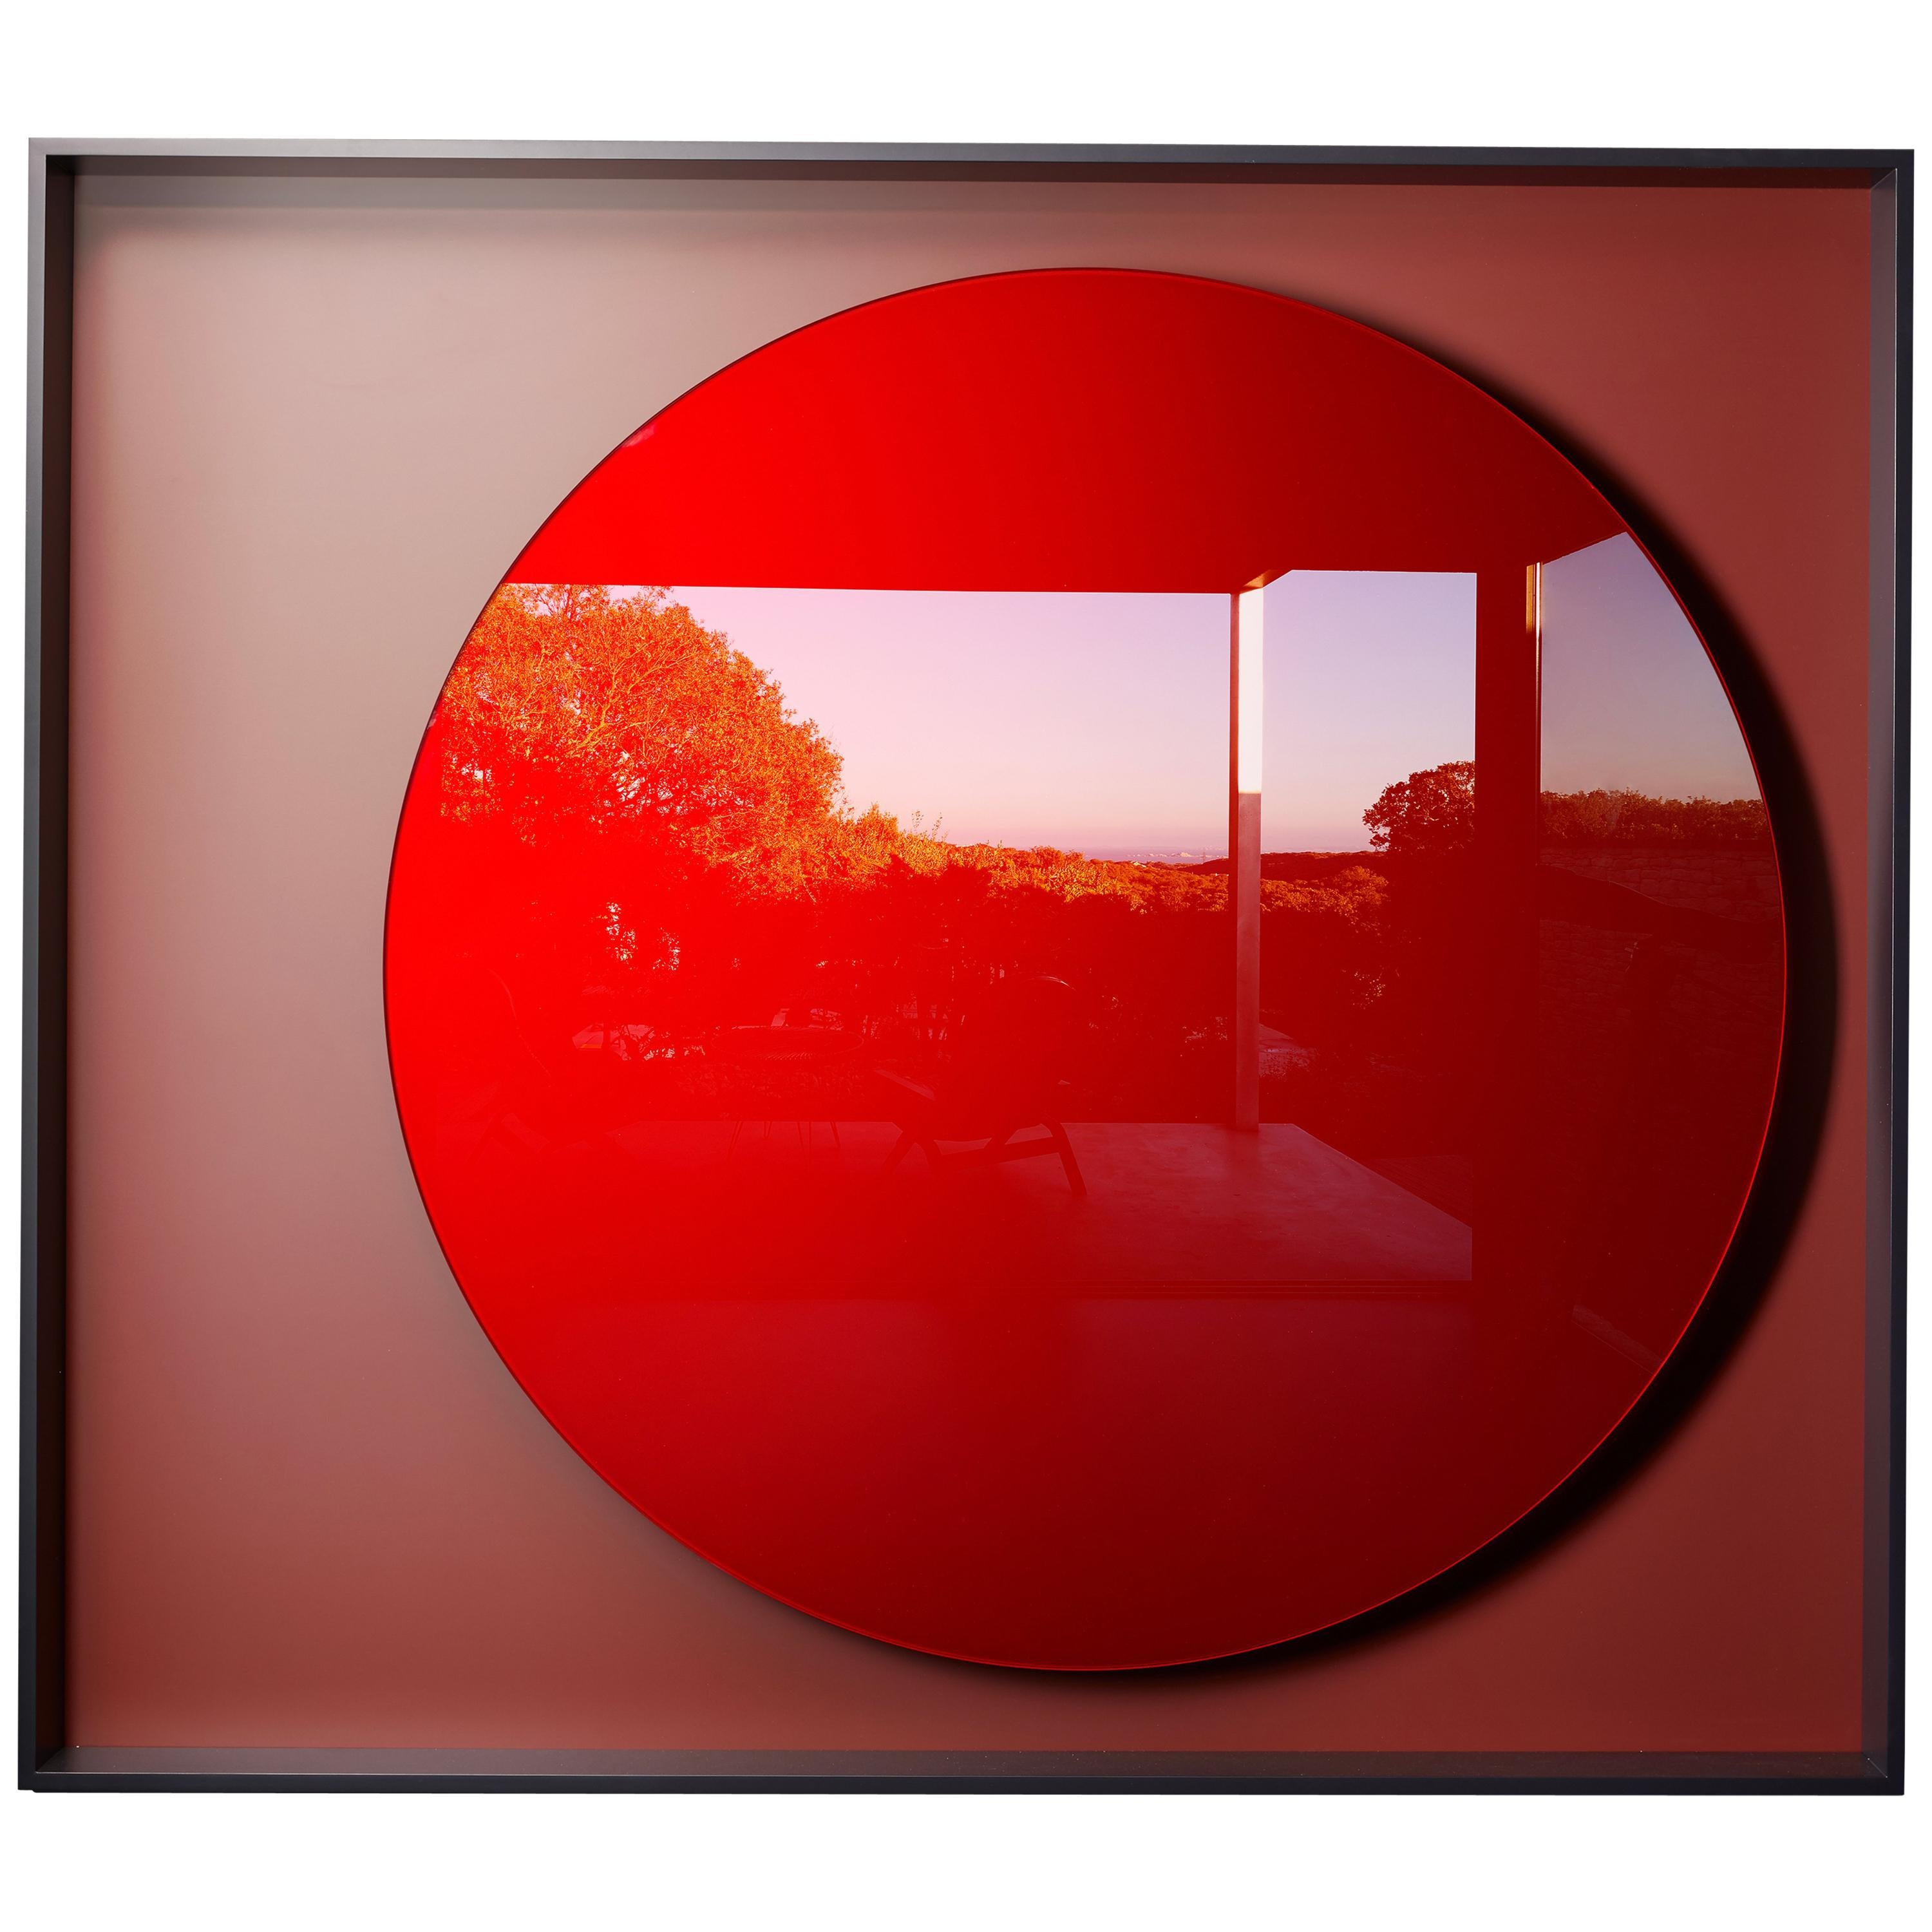 Red Moon Mirror, by Reda Amalou Design, 2018, Gallery Collection. Art Design.